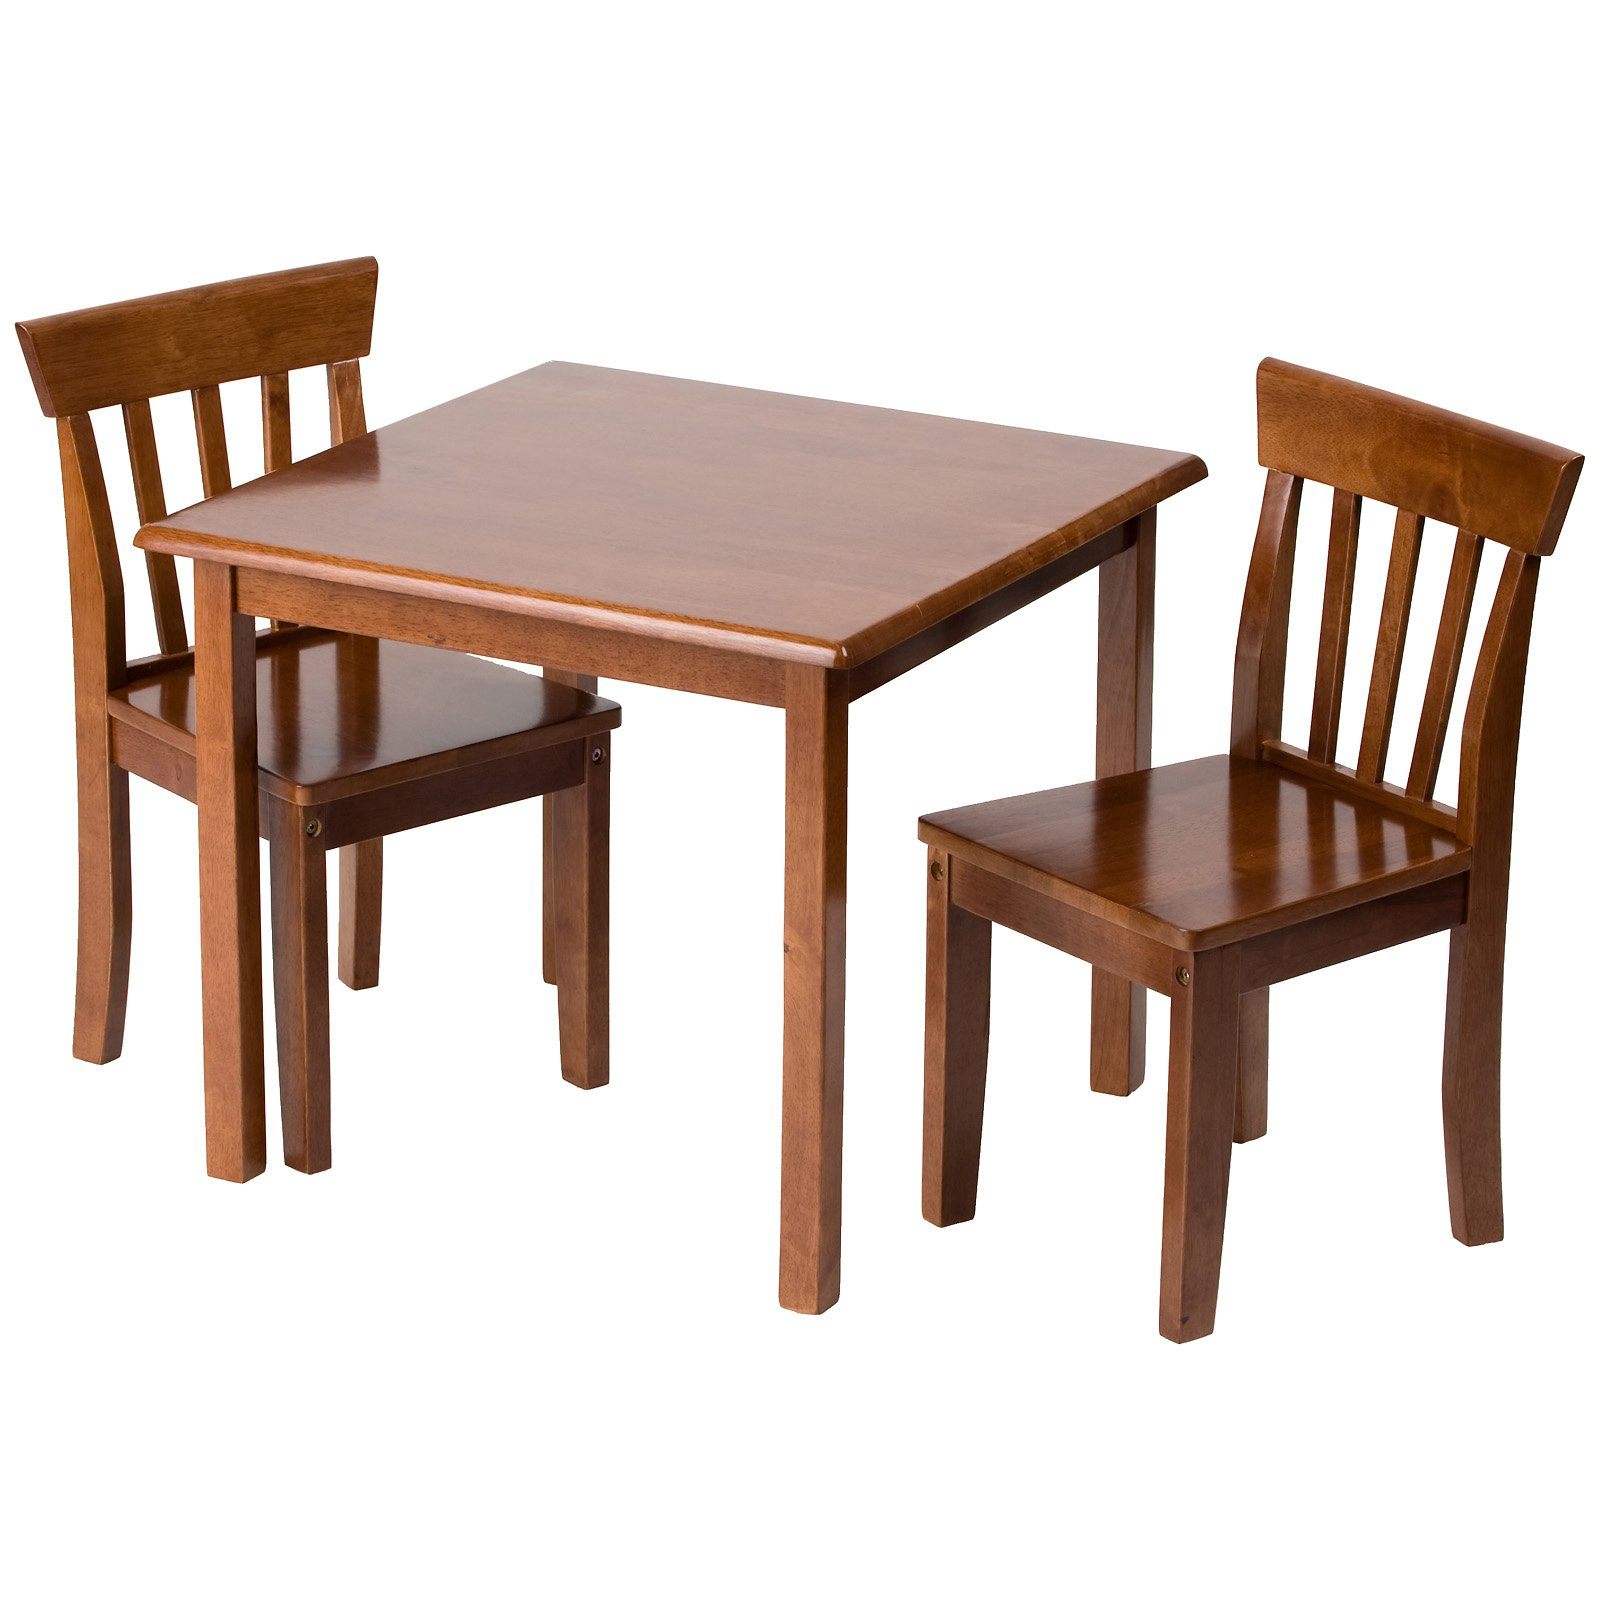 Gift Mark Square Table and Chair Set